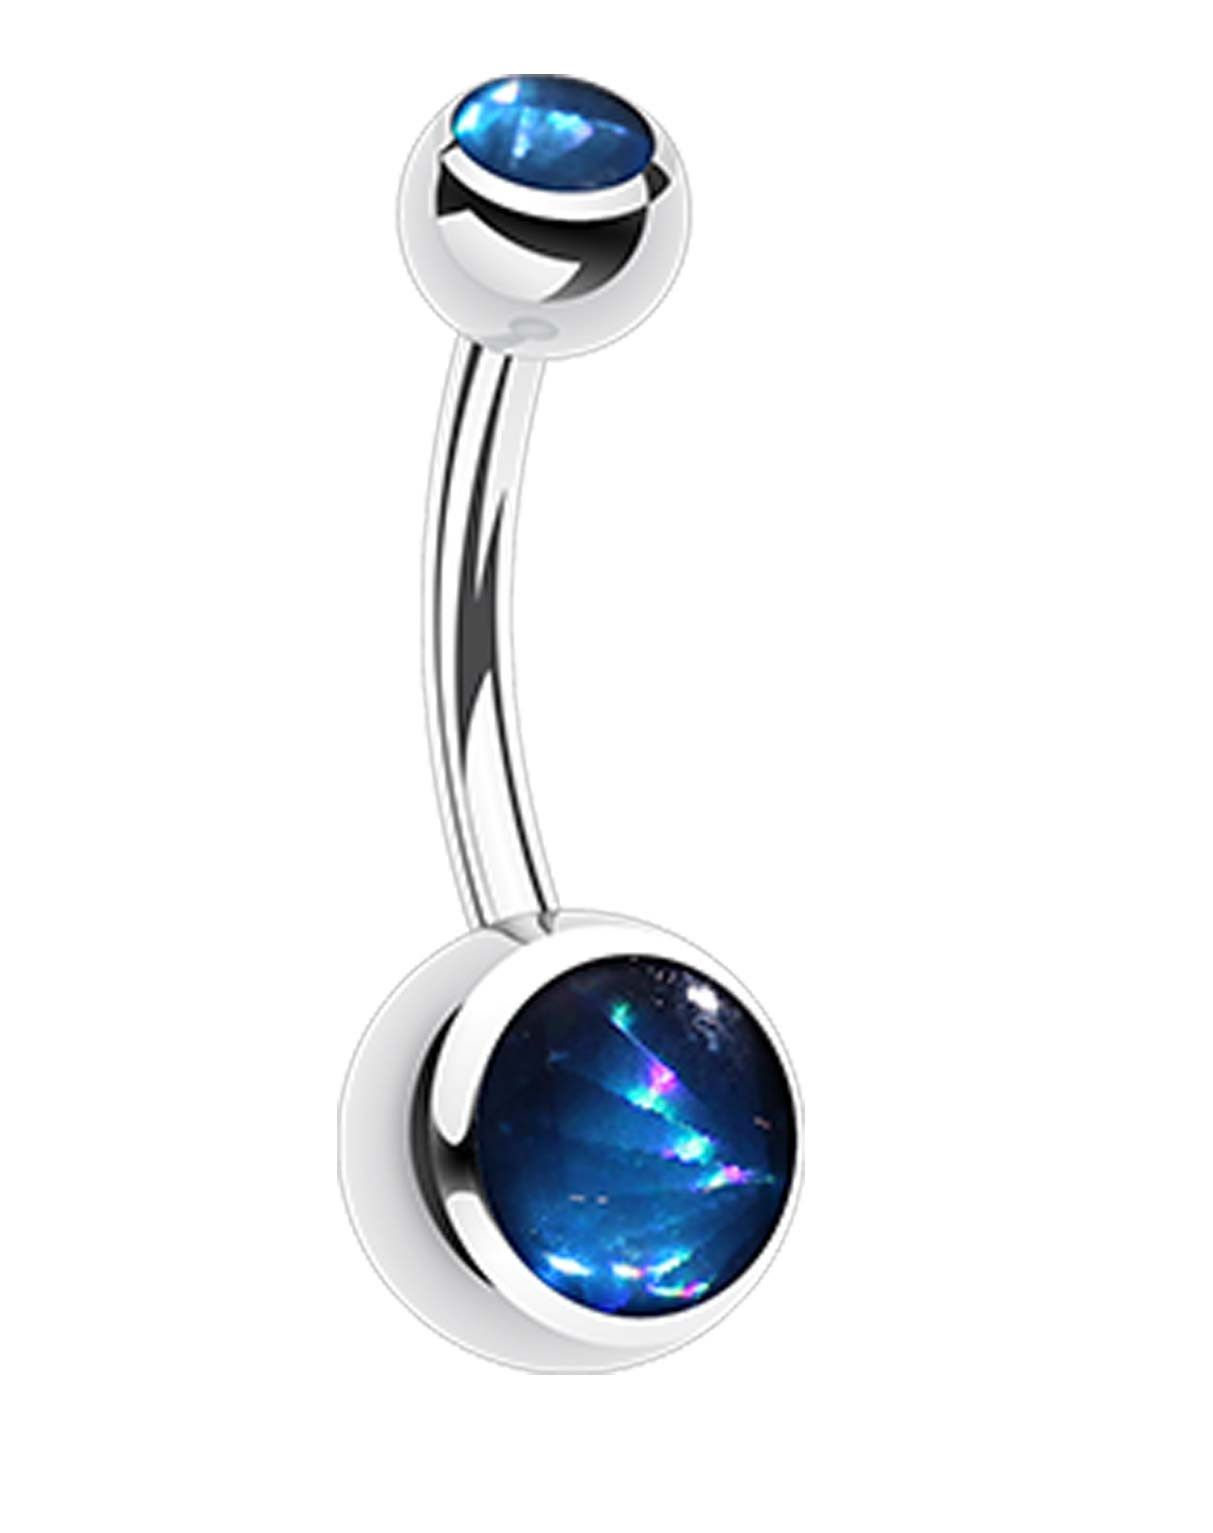 Piercing on belly  Hologram Sparkle L Surgical Steel Belly Button Ring  Belly